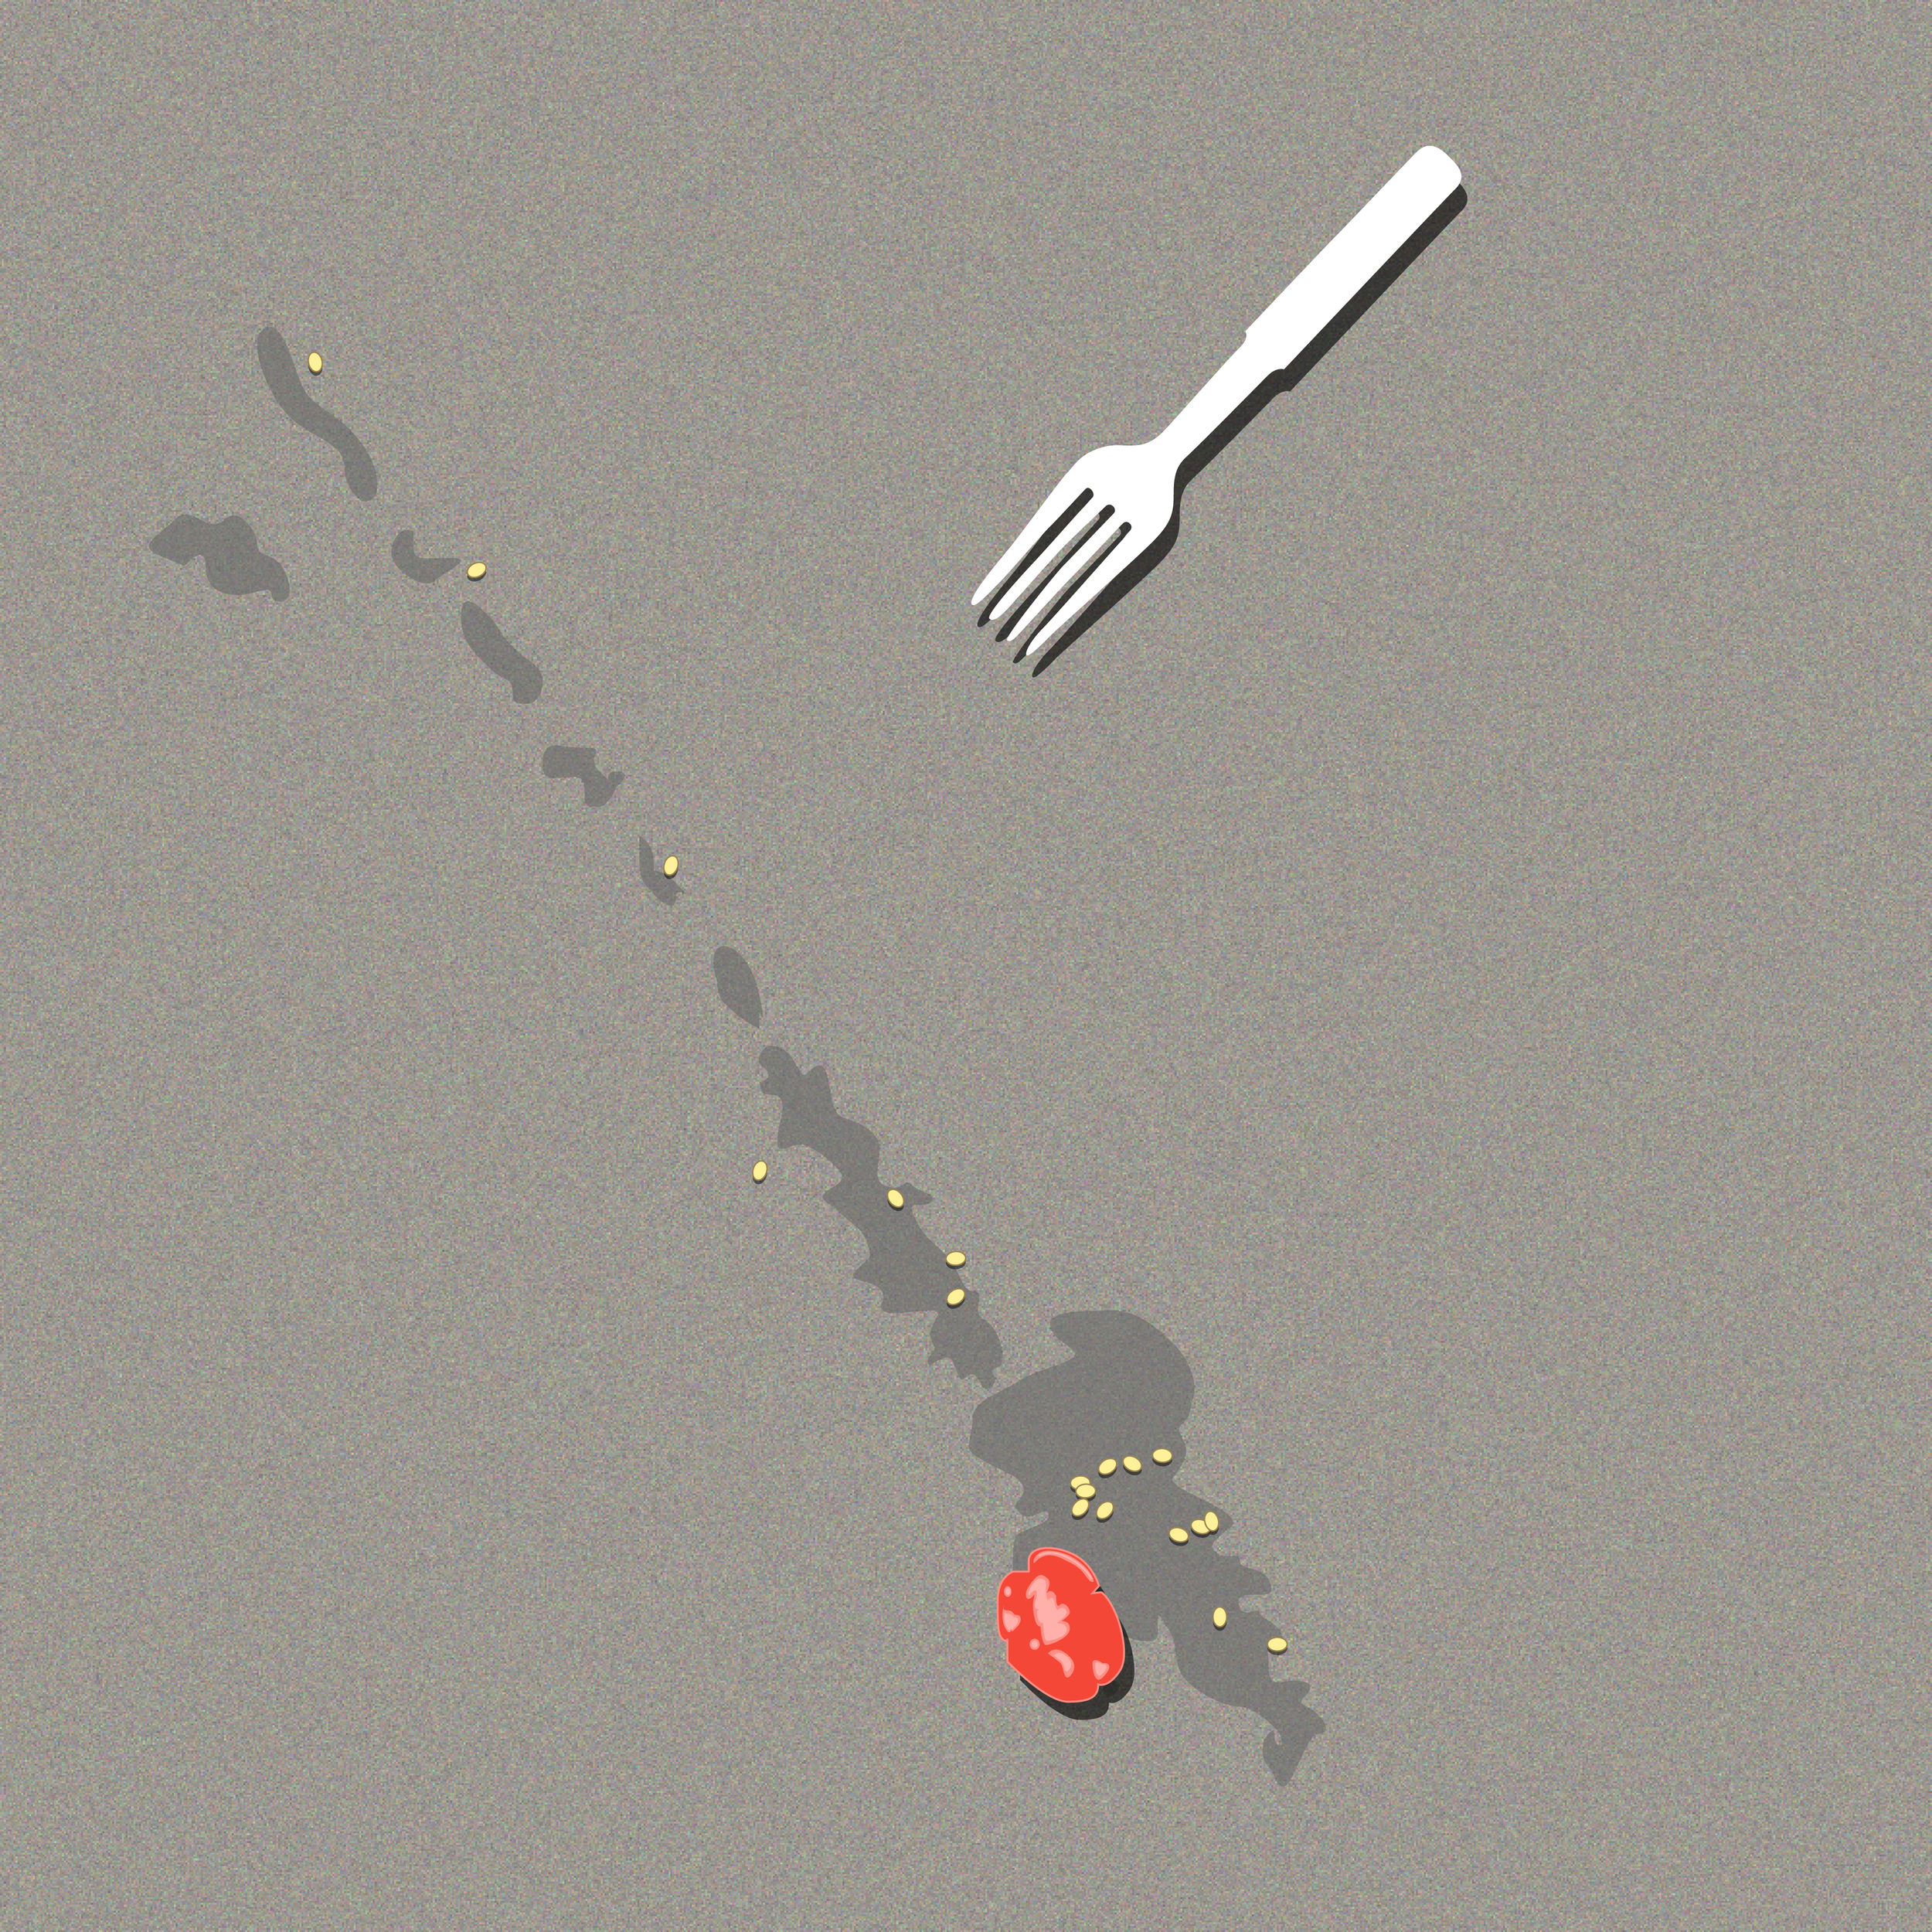 lassie_collective_dropped_tomato_fork.jpg